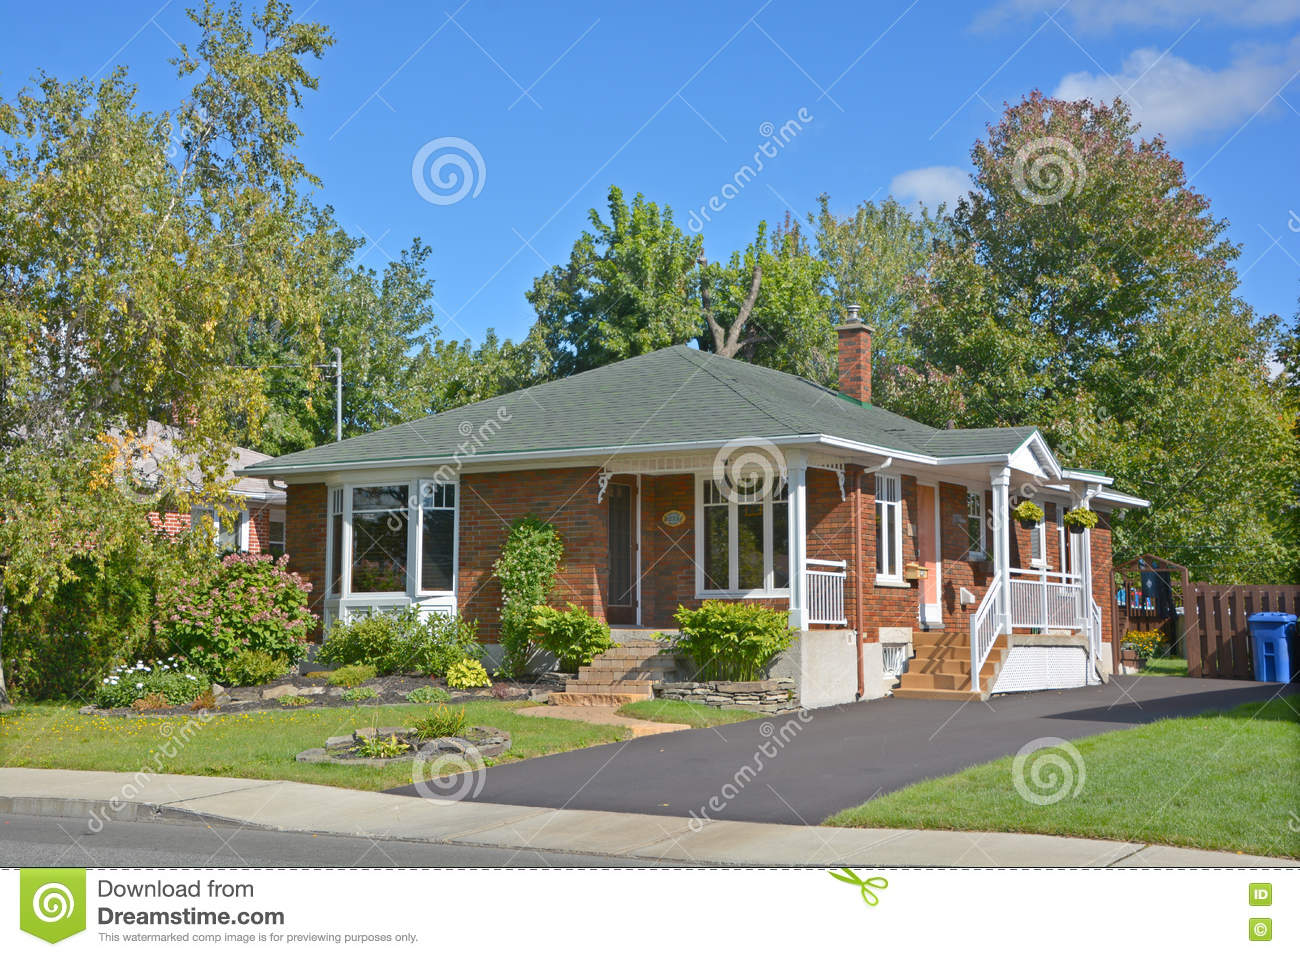 Typical 70s bungalow house editorial image image of for 70s house exterior